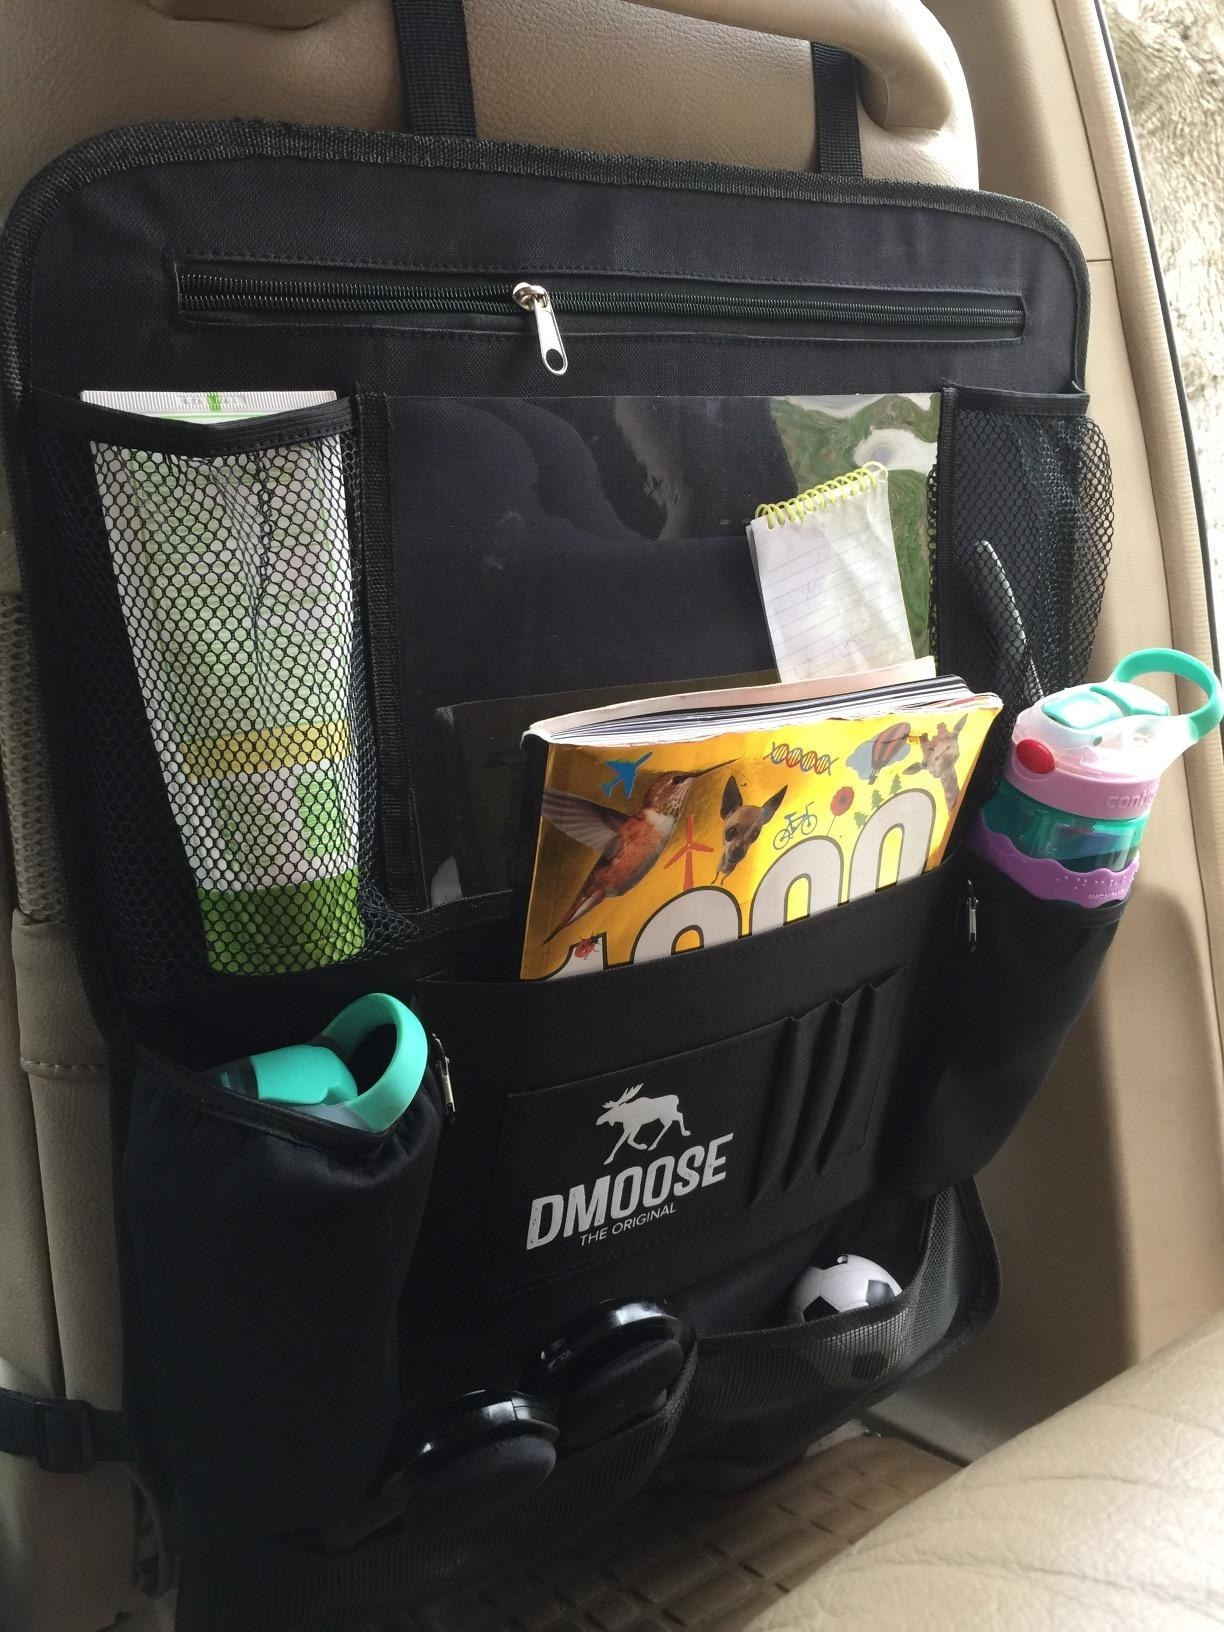 The backseat organizer, which has a touchscreen tablet holder and drink pouches